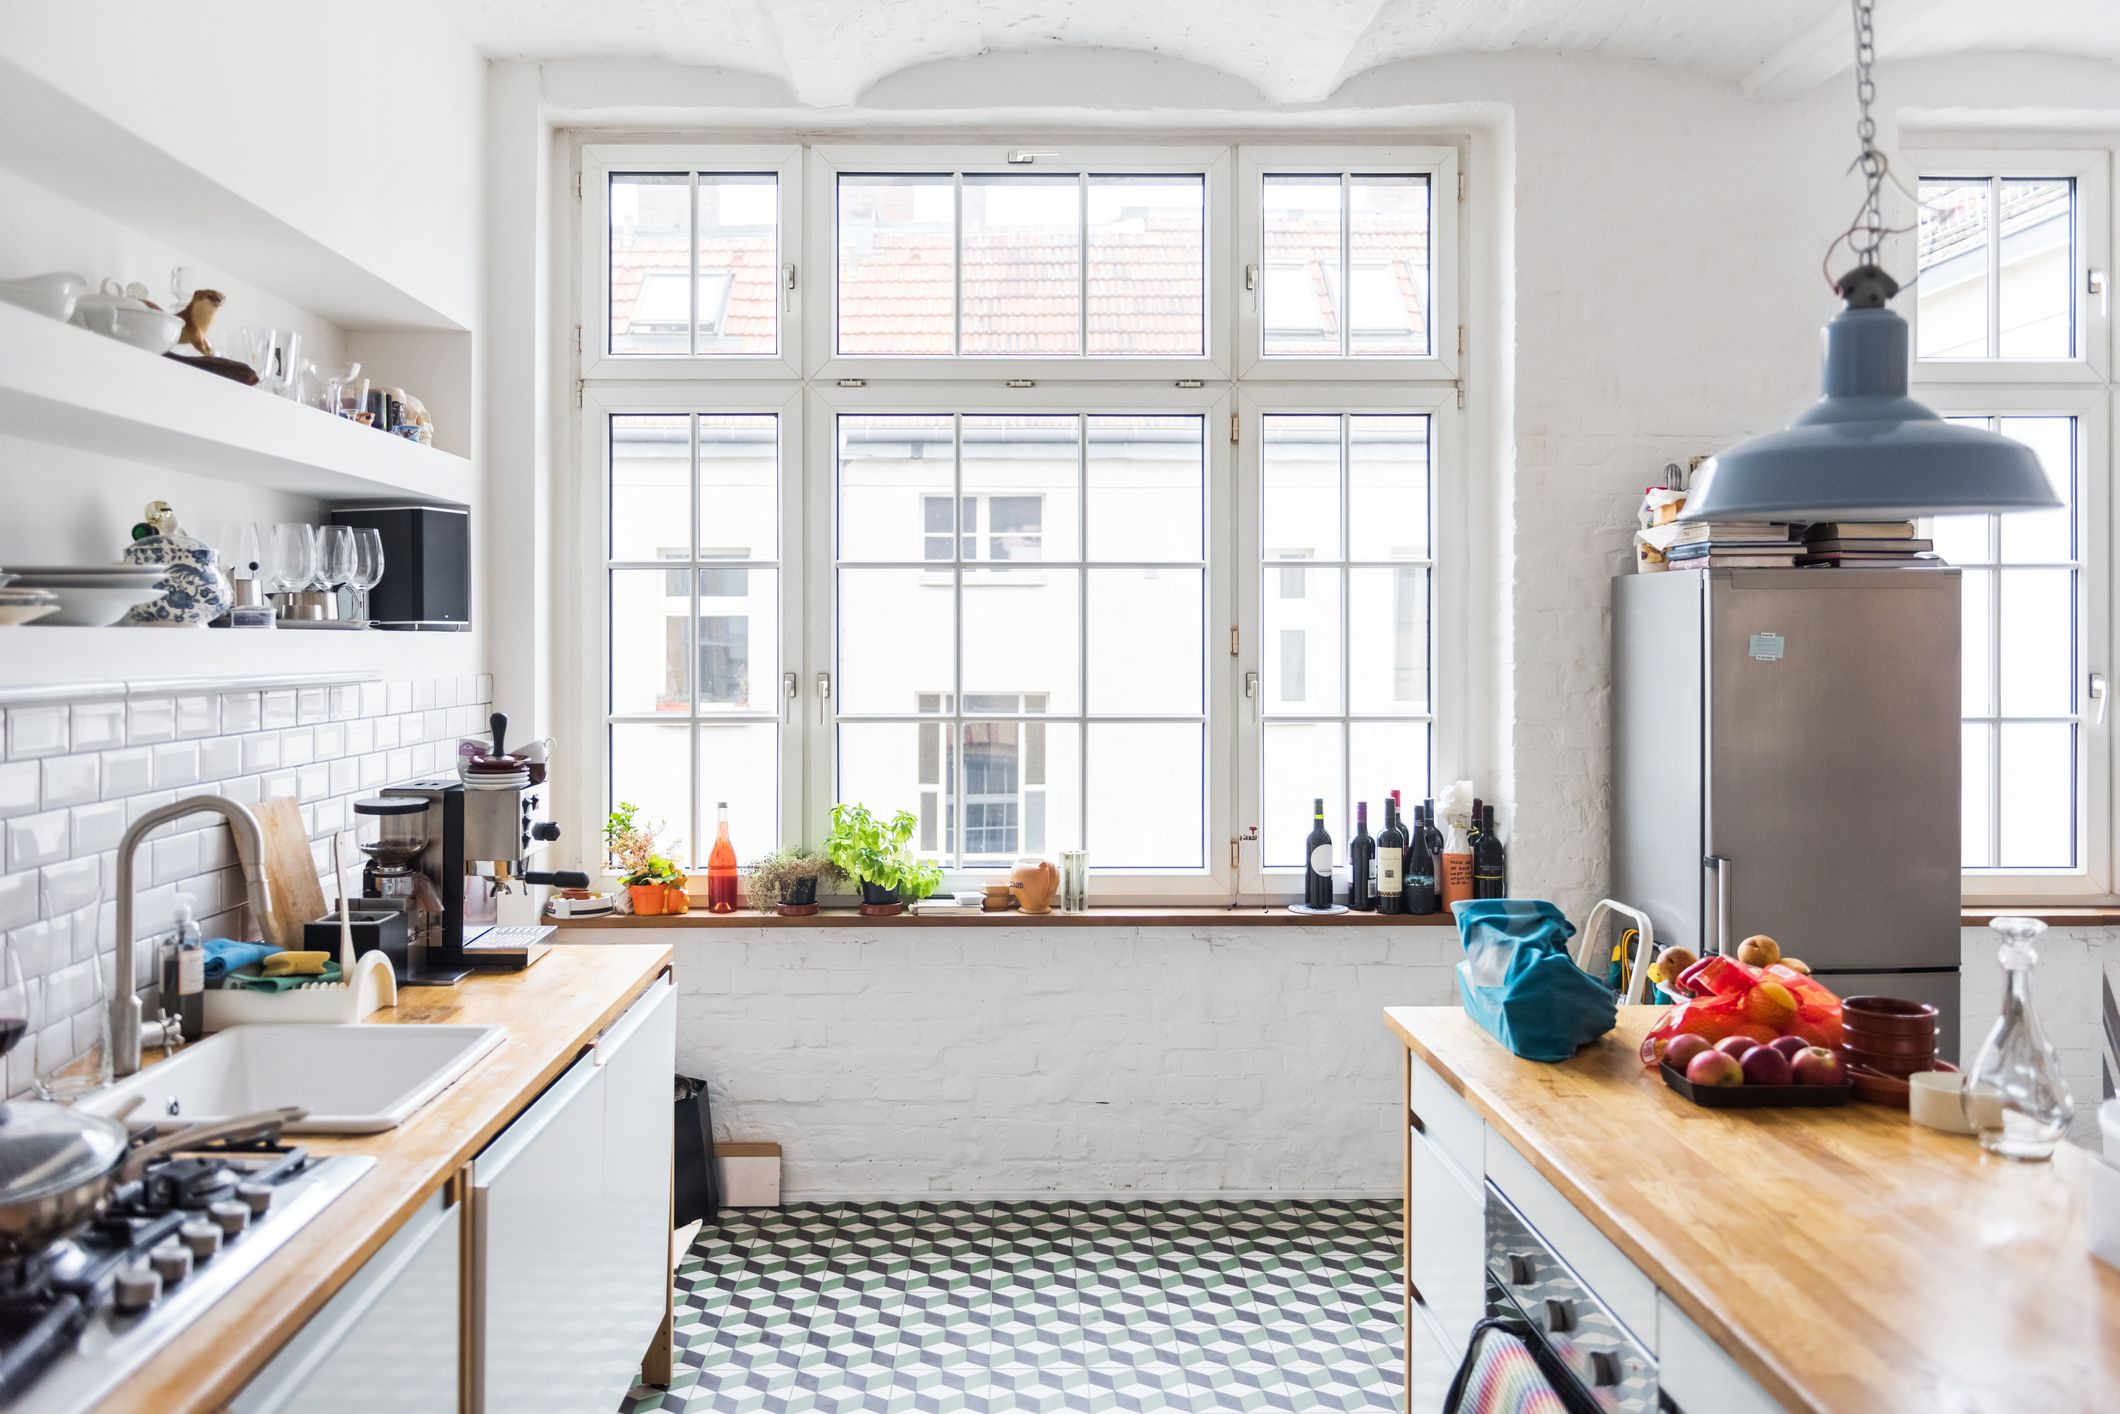 Feng shui tips for positioning your kitchen